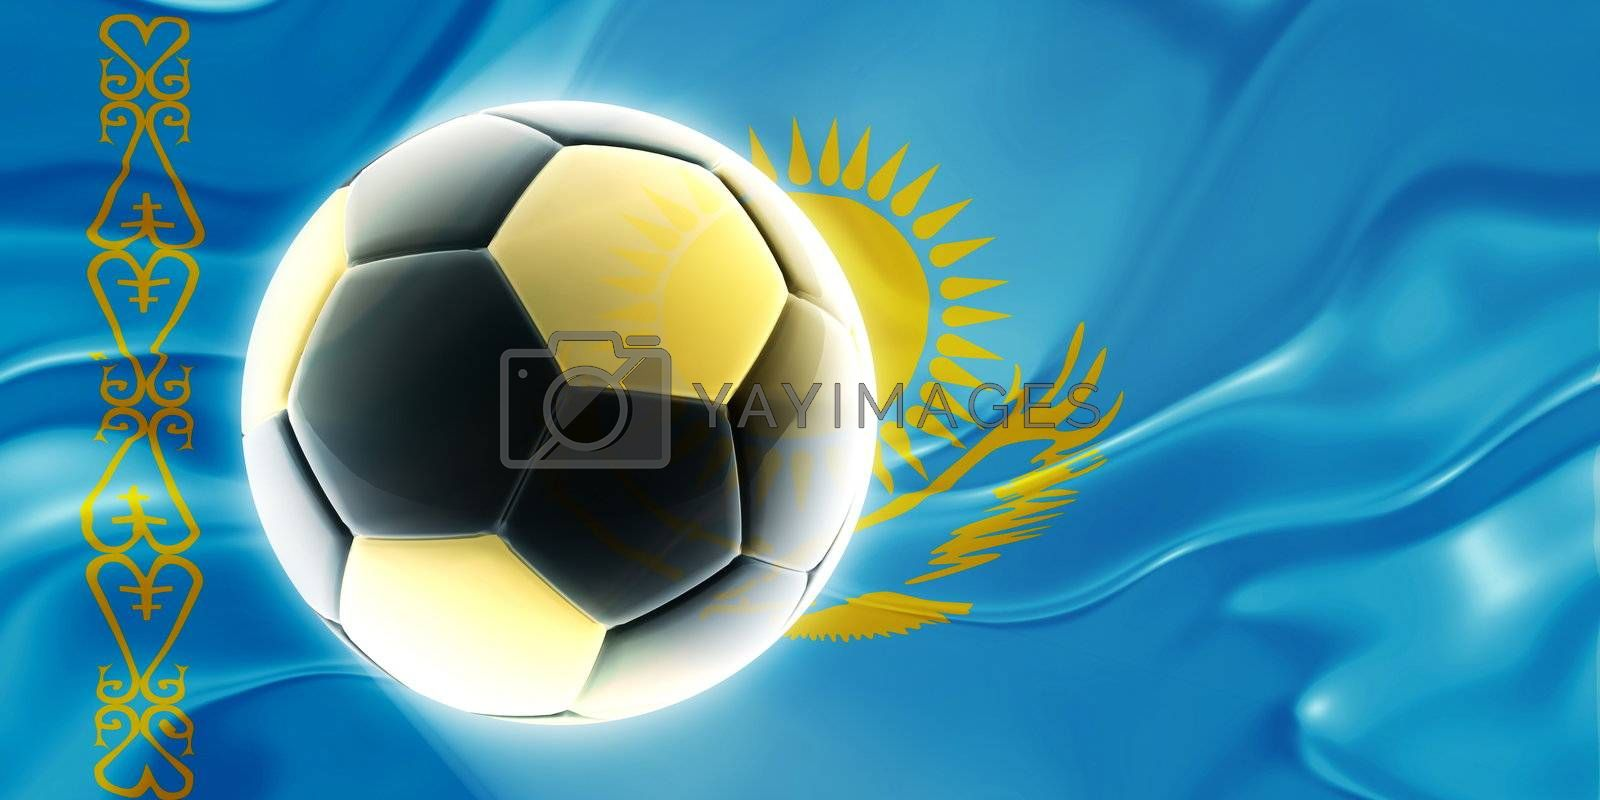 Flag of Kazakhstan, national country symbol illustration wavy fabric sports soccer football